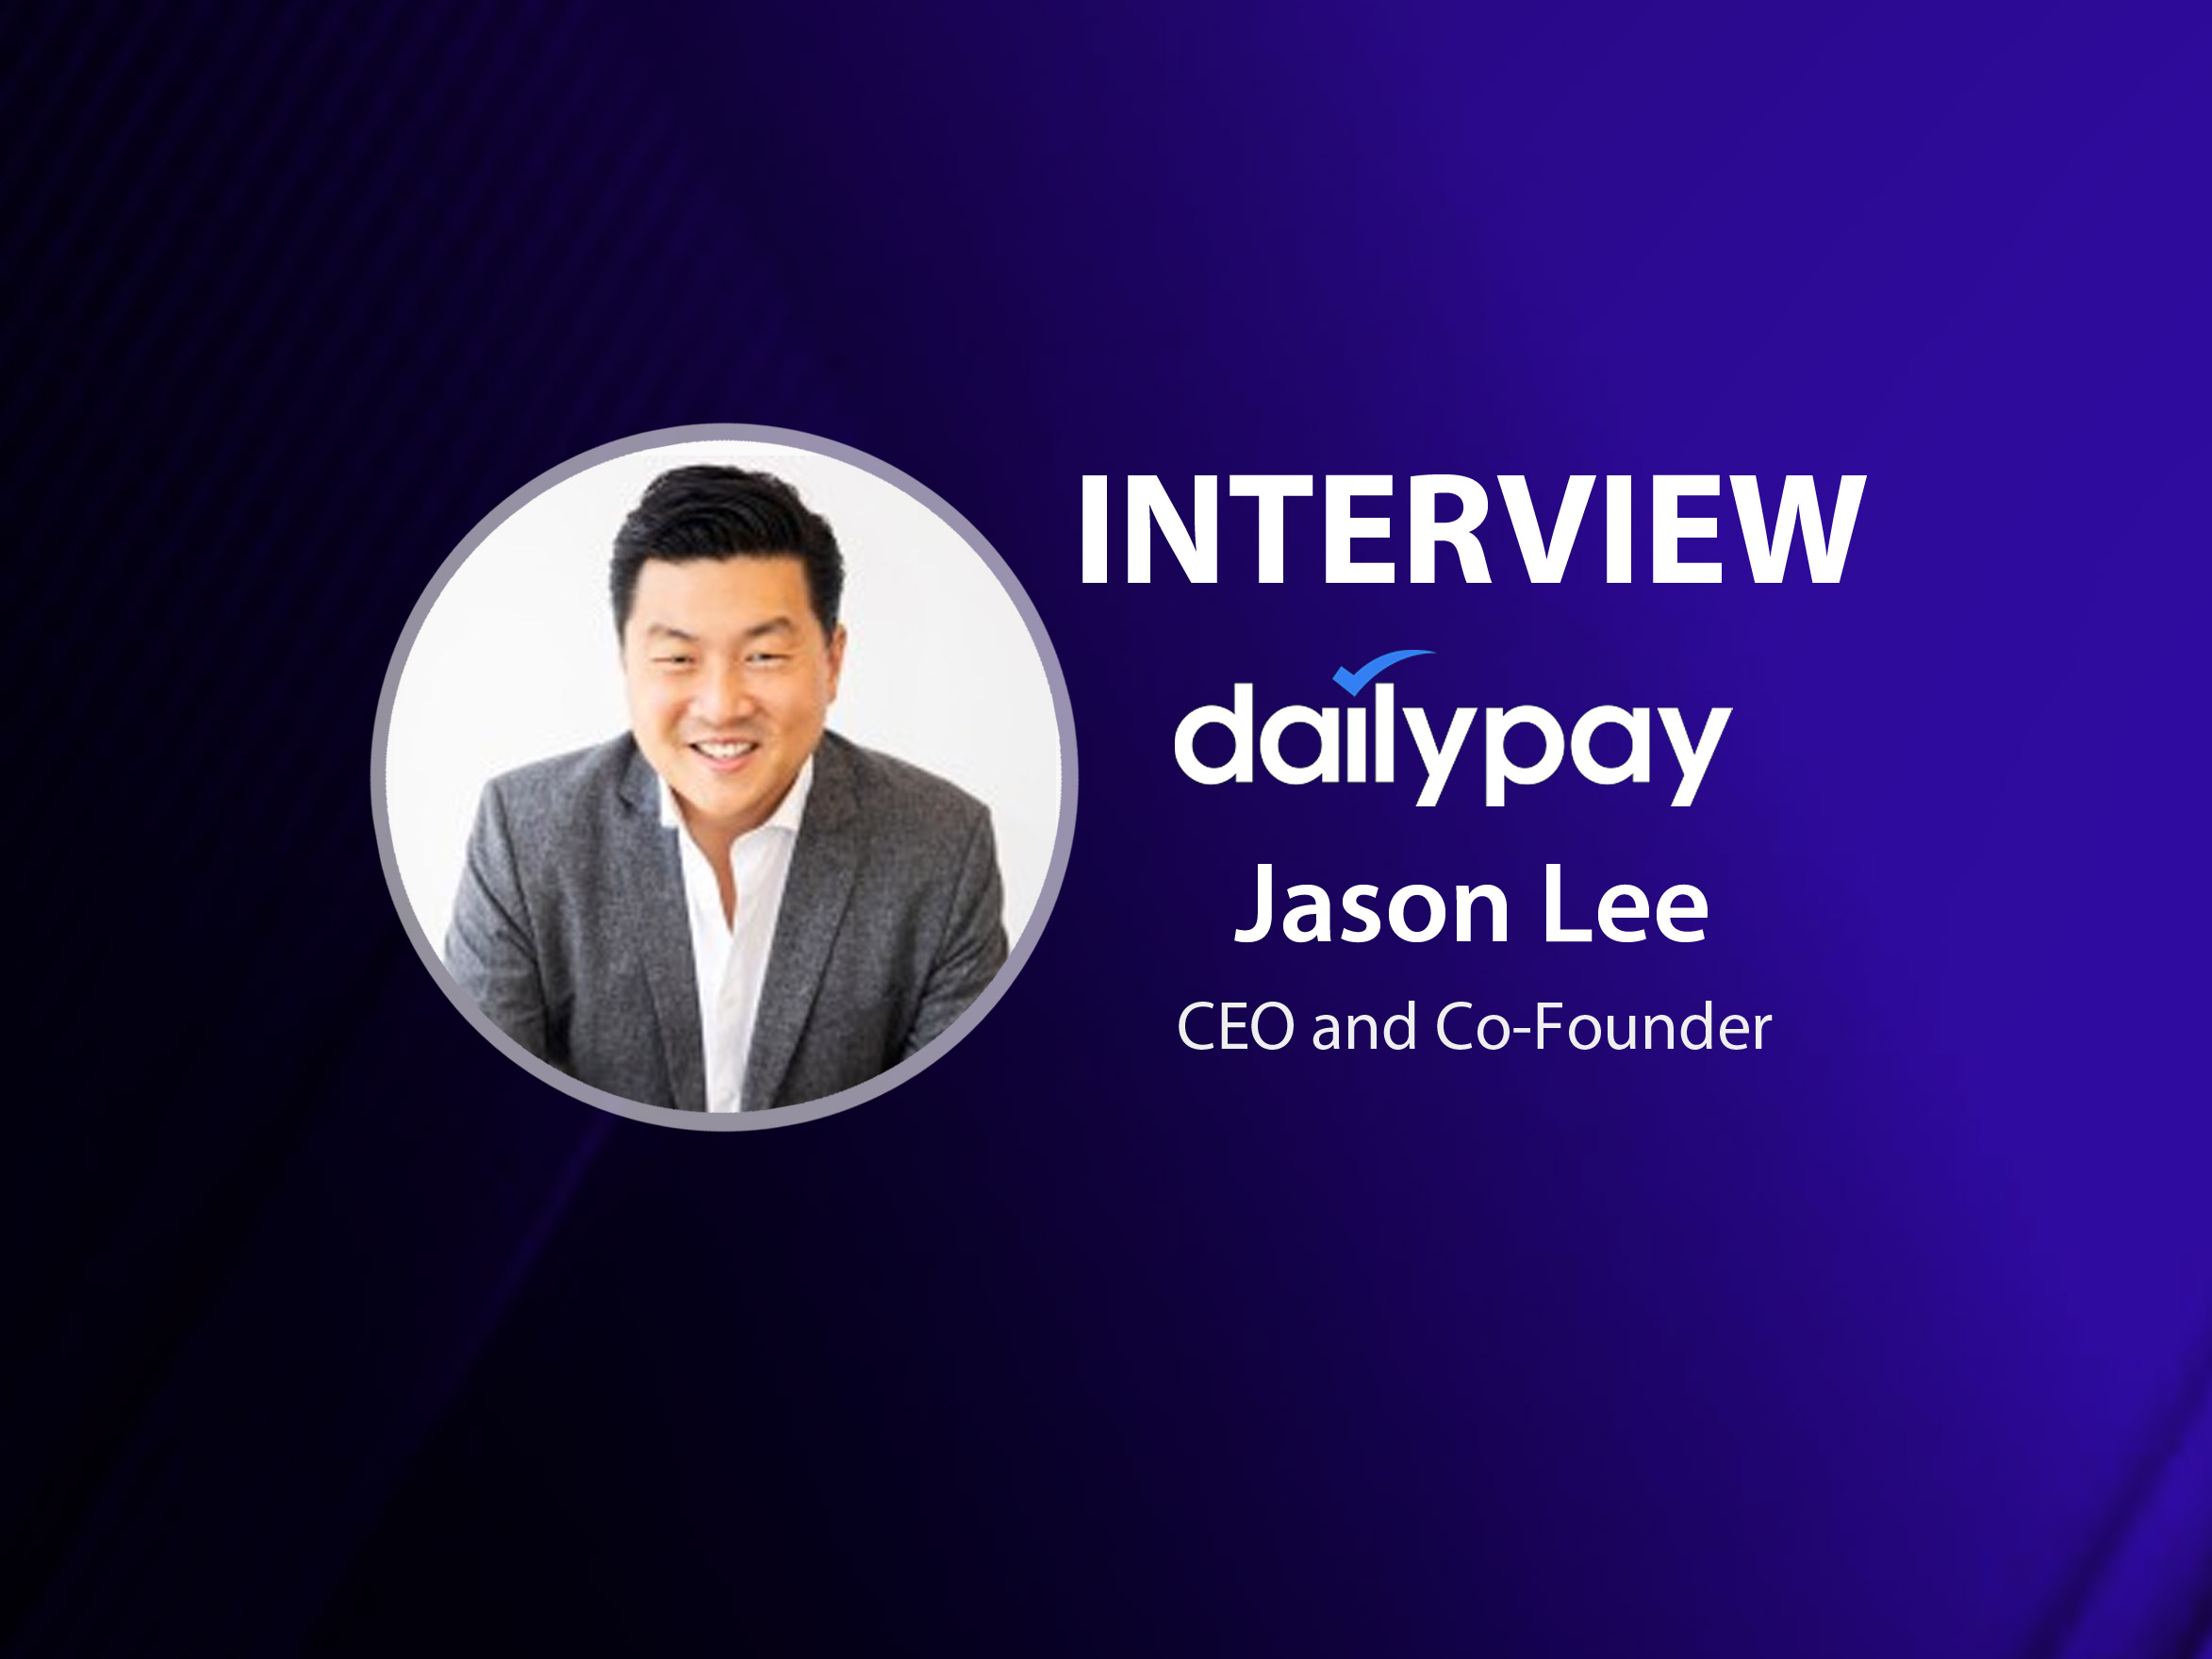 GlobalFintechSeries Interview with Jason Lee, CEO and Co-Founder at DailyPay